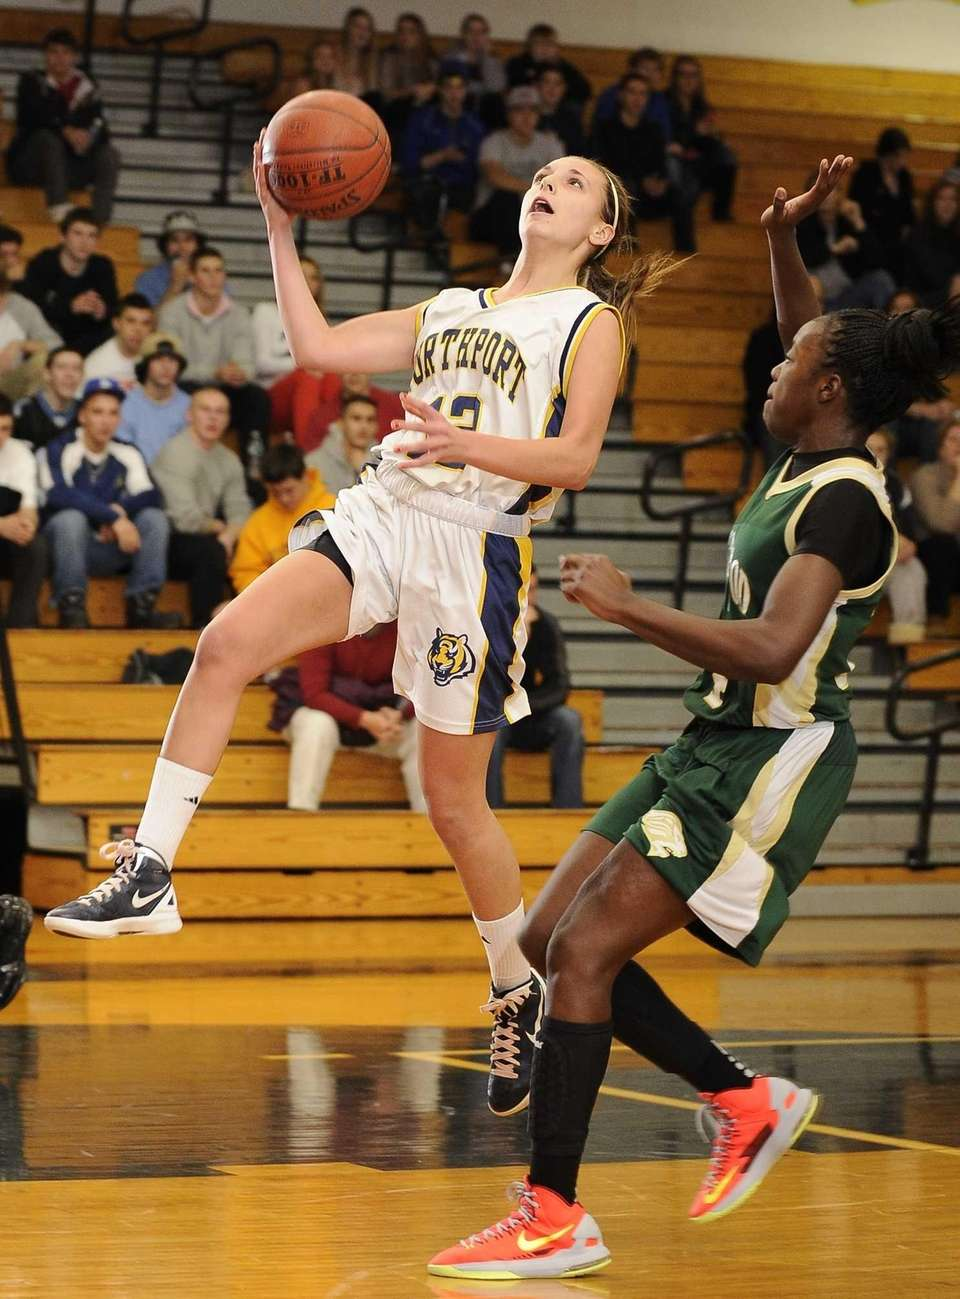 Northport guard Allie Pavinelli scores on a layup